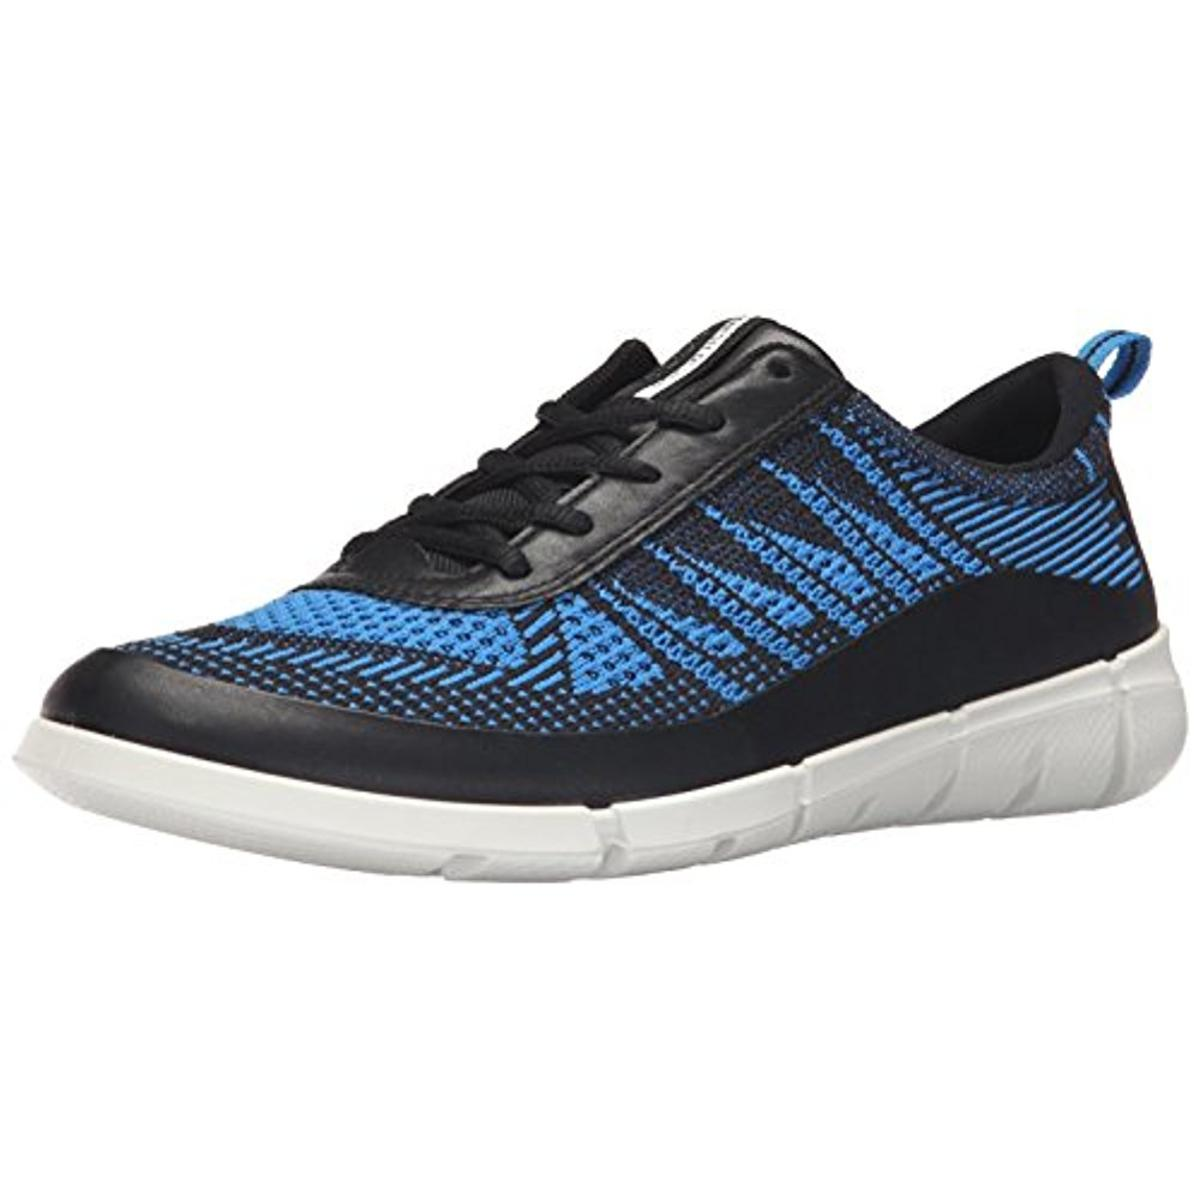 ECCO Mens Intrinsic Leather Mesh Fashion Sneakers by Ecco